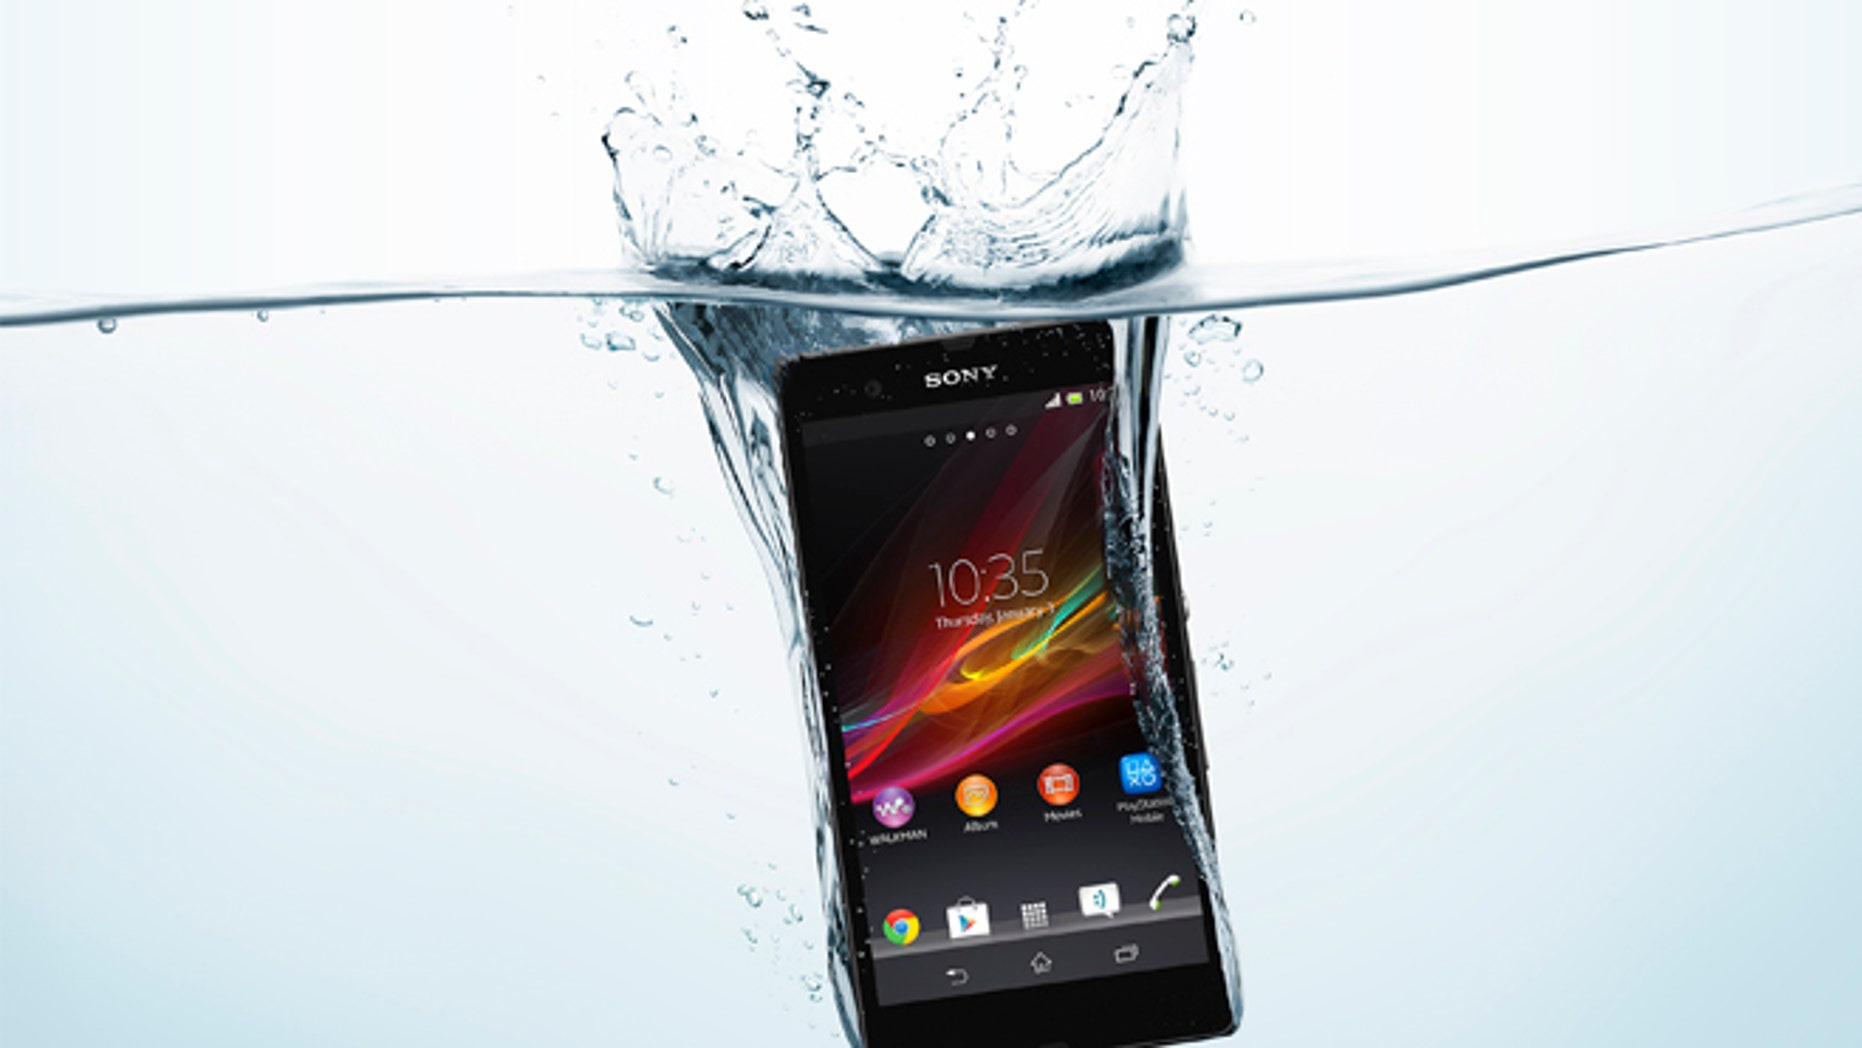 The Sony Xperia Z has a water-resistant shell, meaning you can submerge the phone up to 3 feet deep for up to 30 minutes.